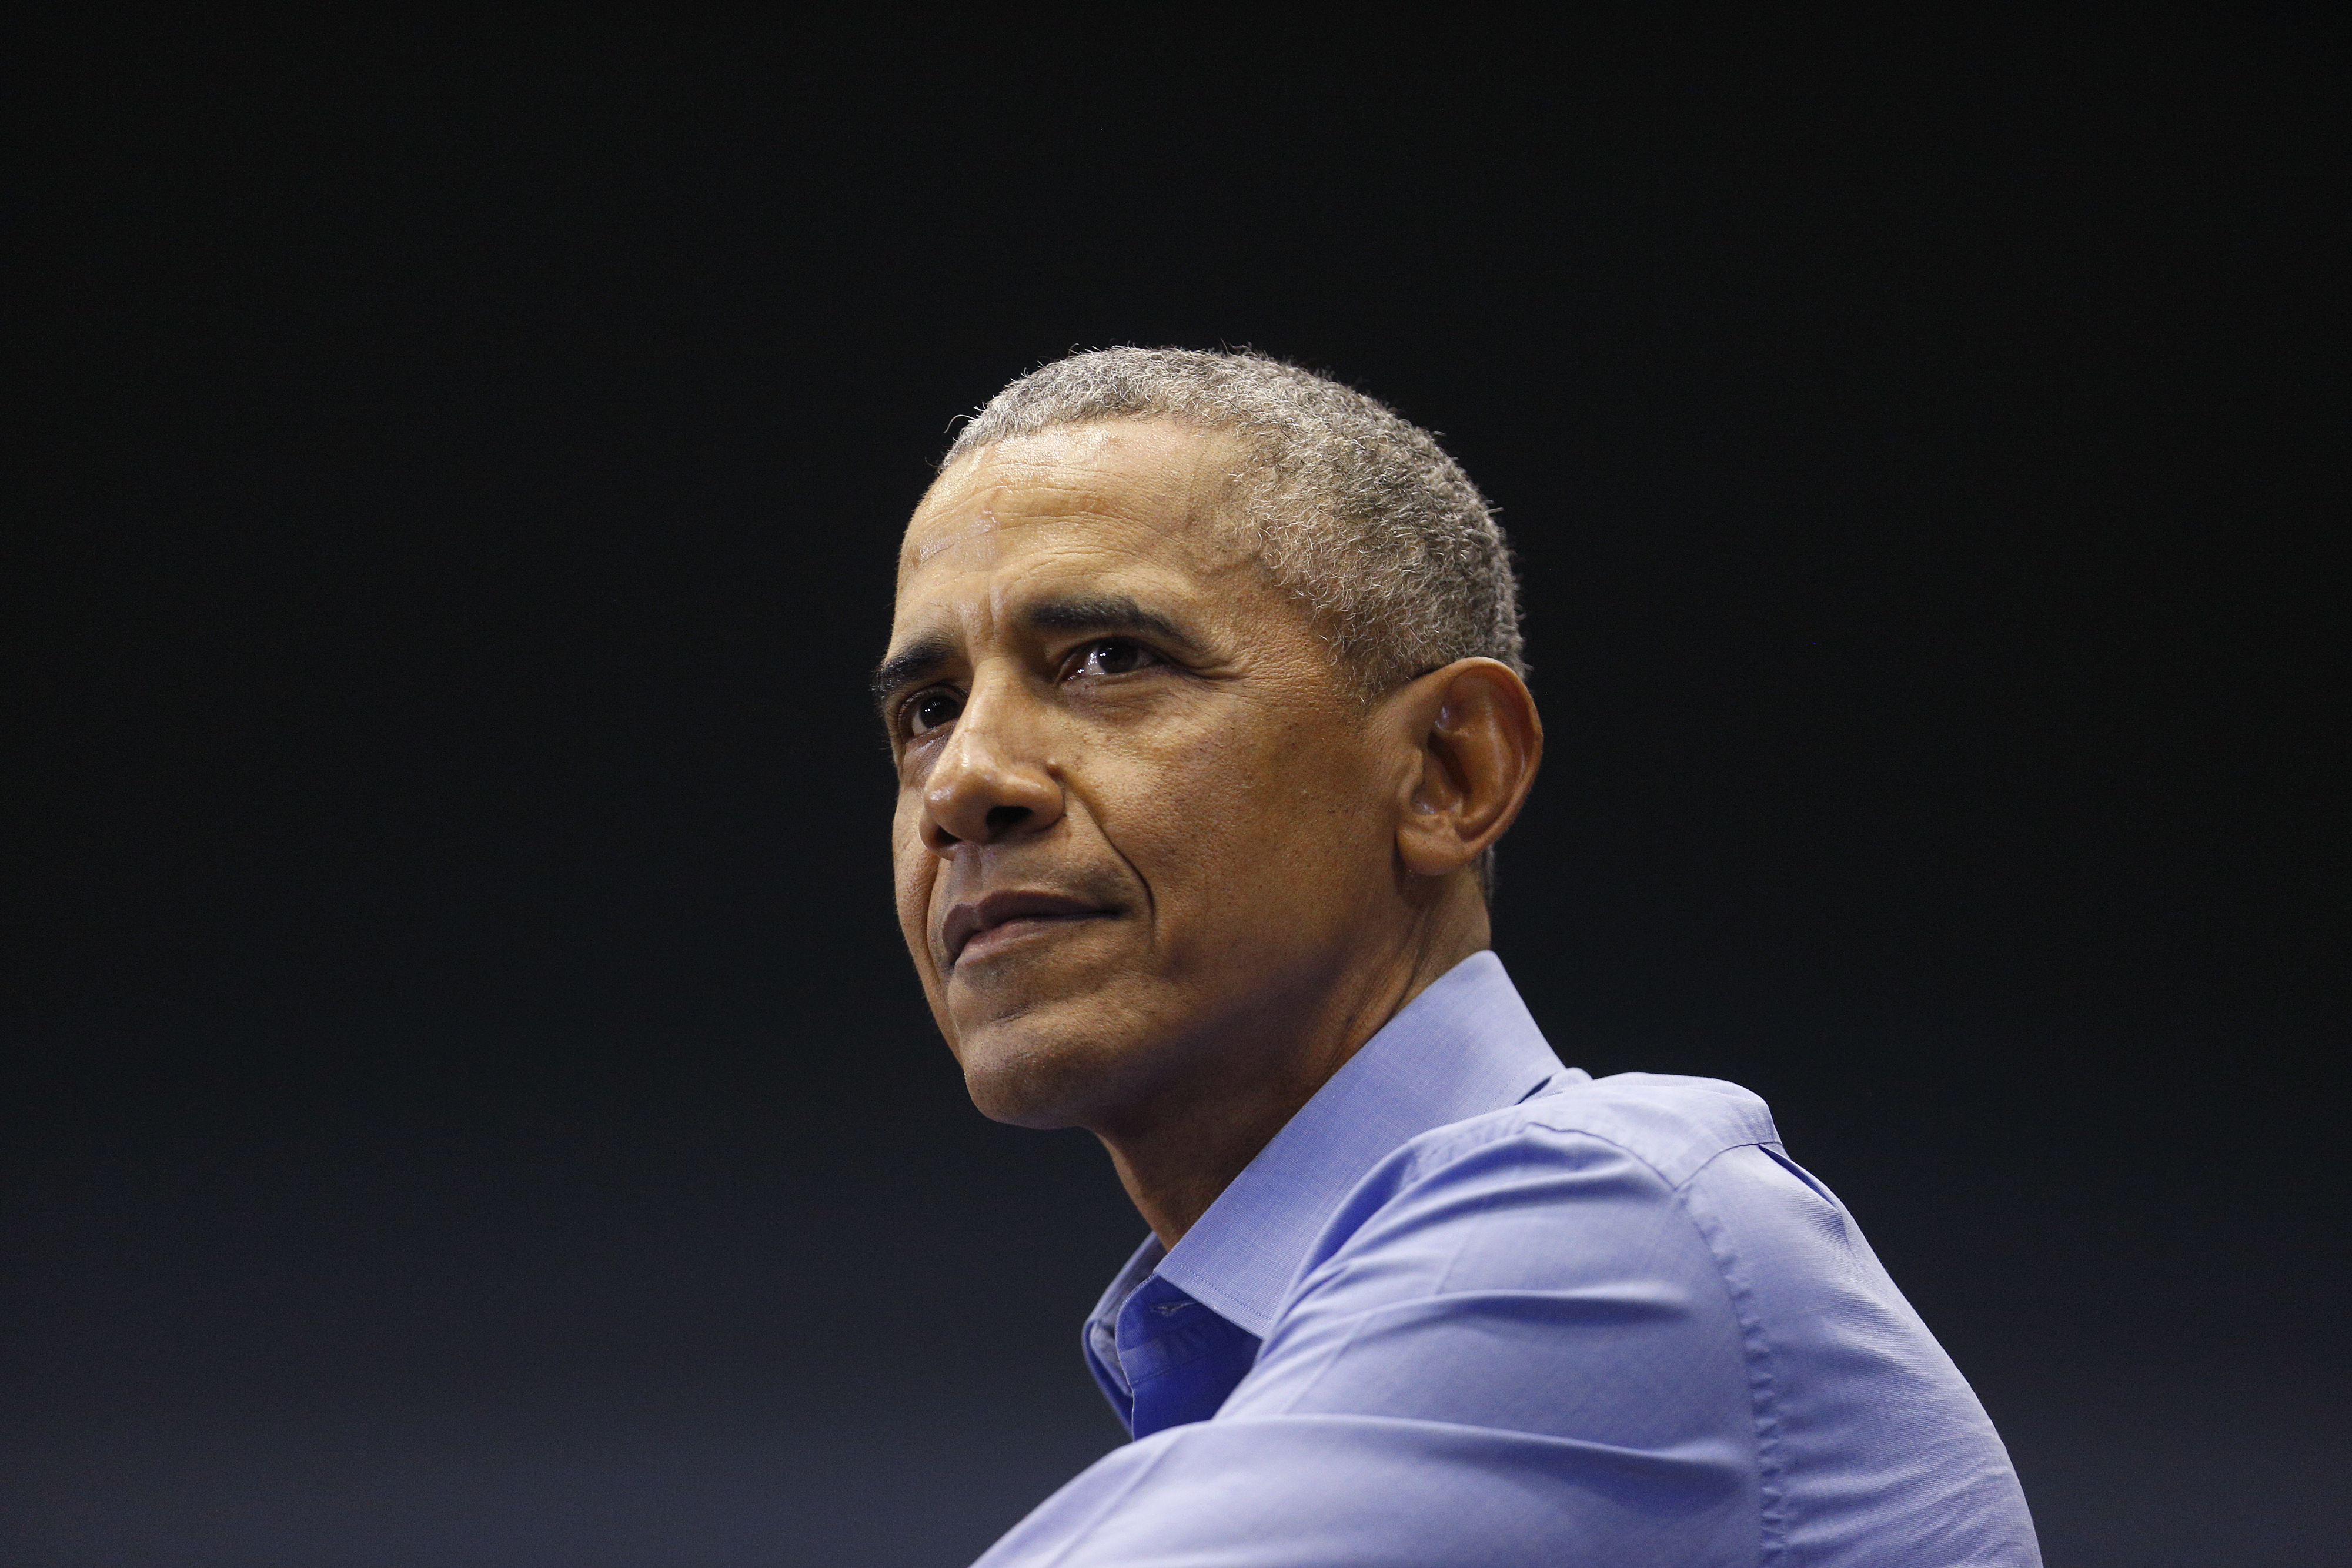 Former U.S. President Barack Obama pauses while speaking during a campaign rally in Gary, Indiana, U.S., on Sunday, Nov. 4, 2018.